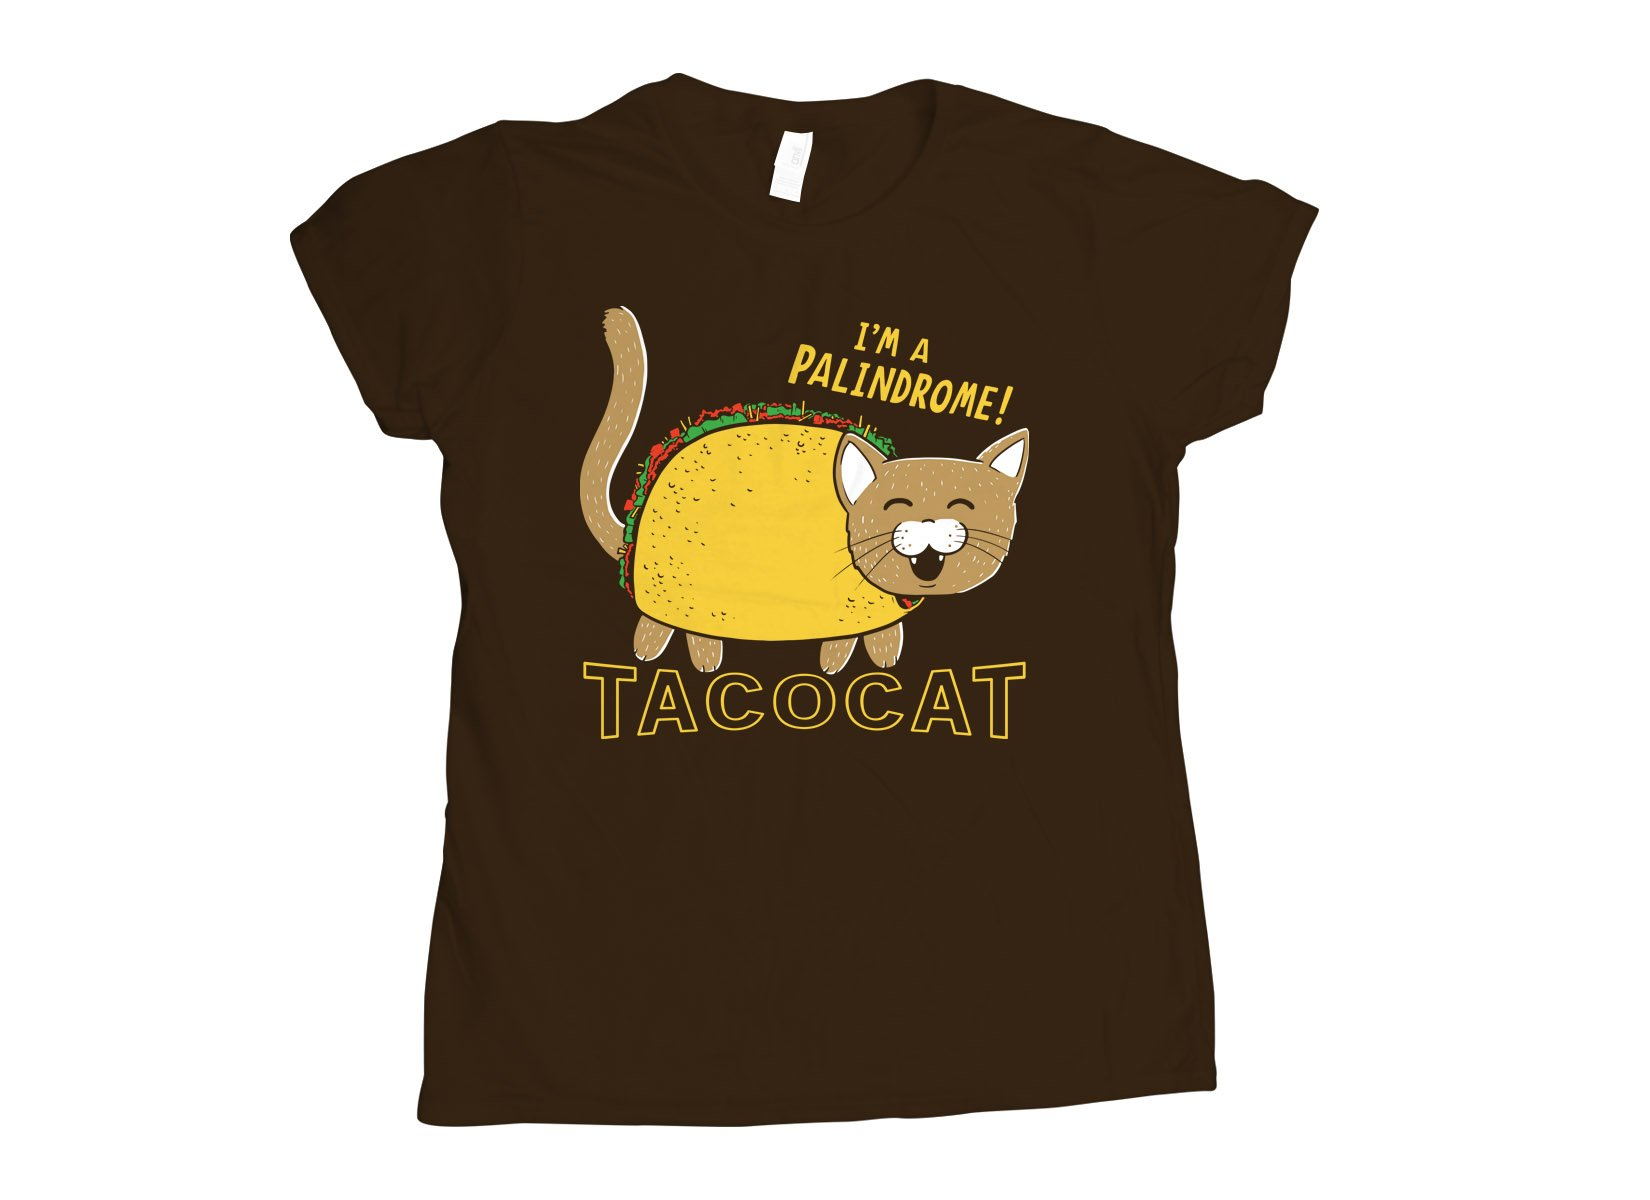 Taco Cat on Womens T-Shirt